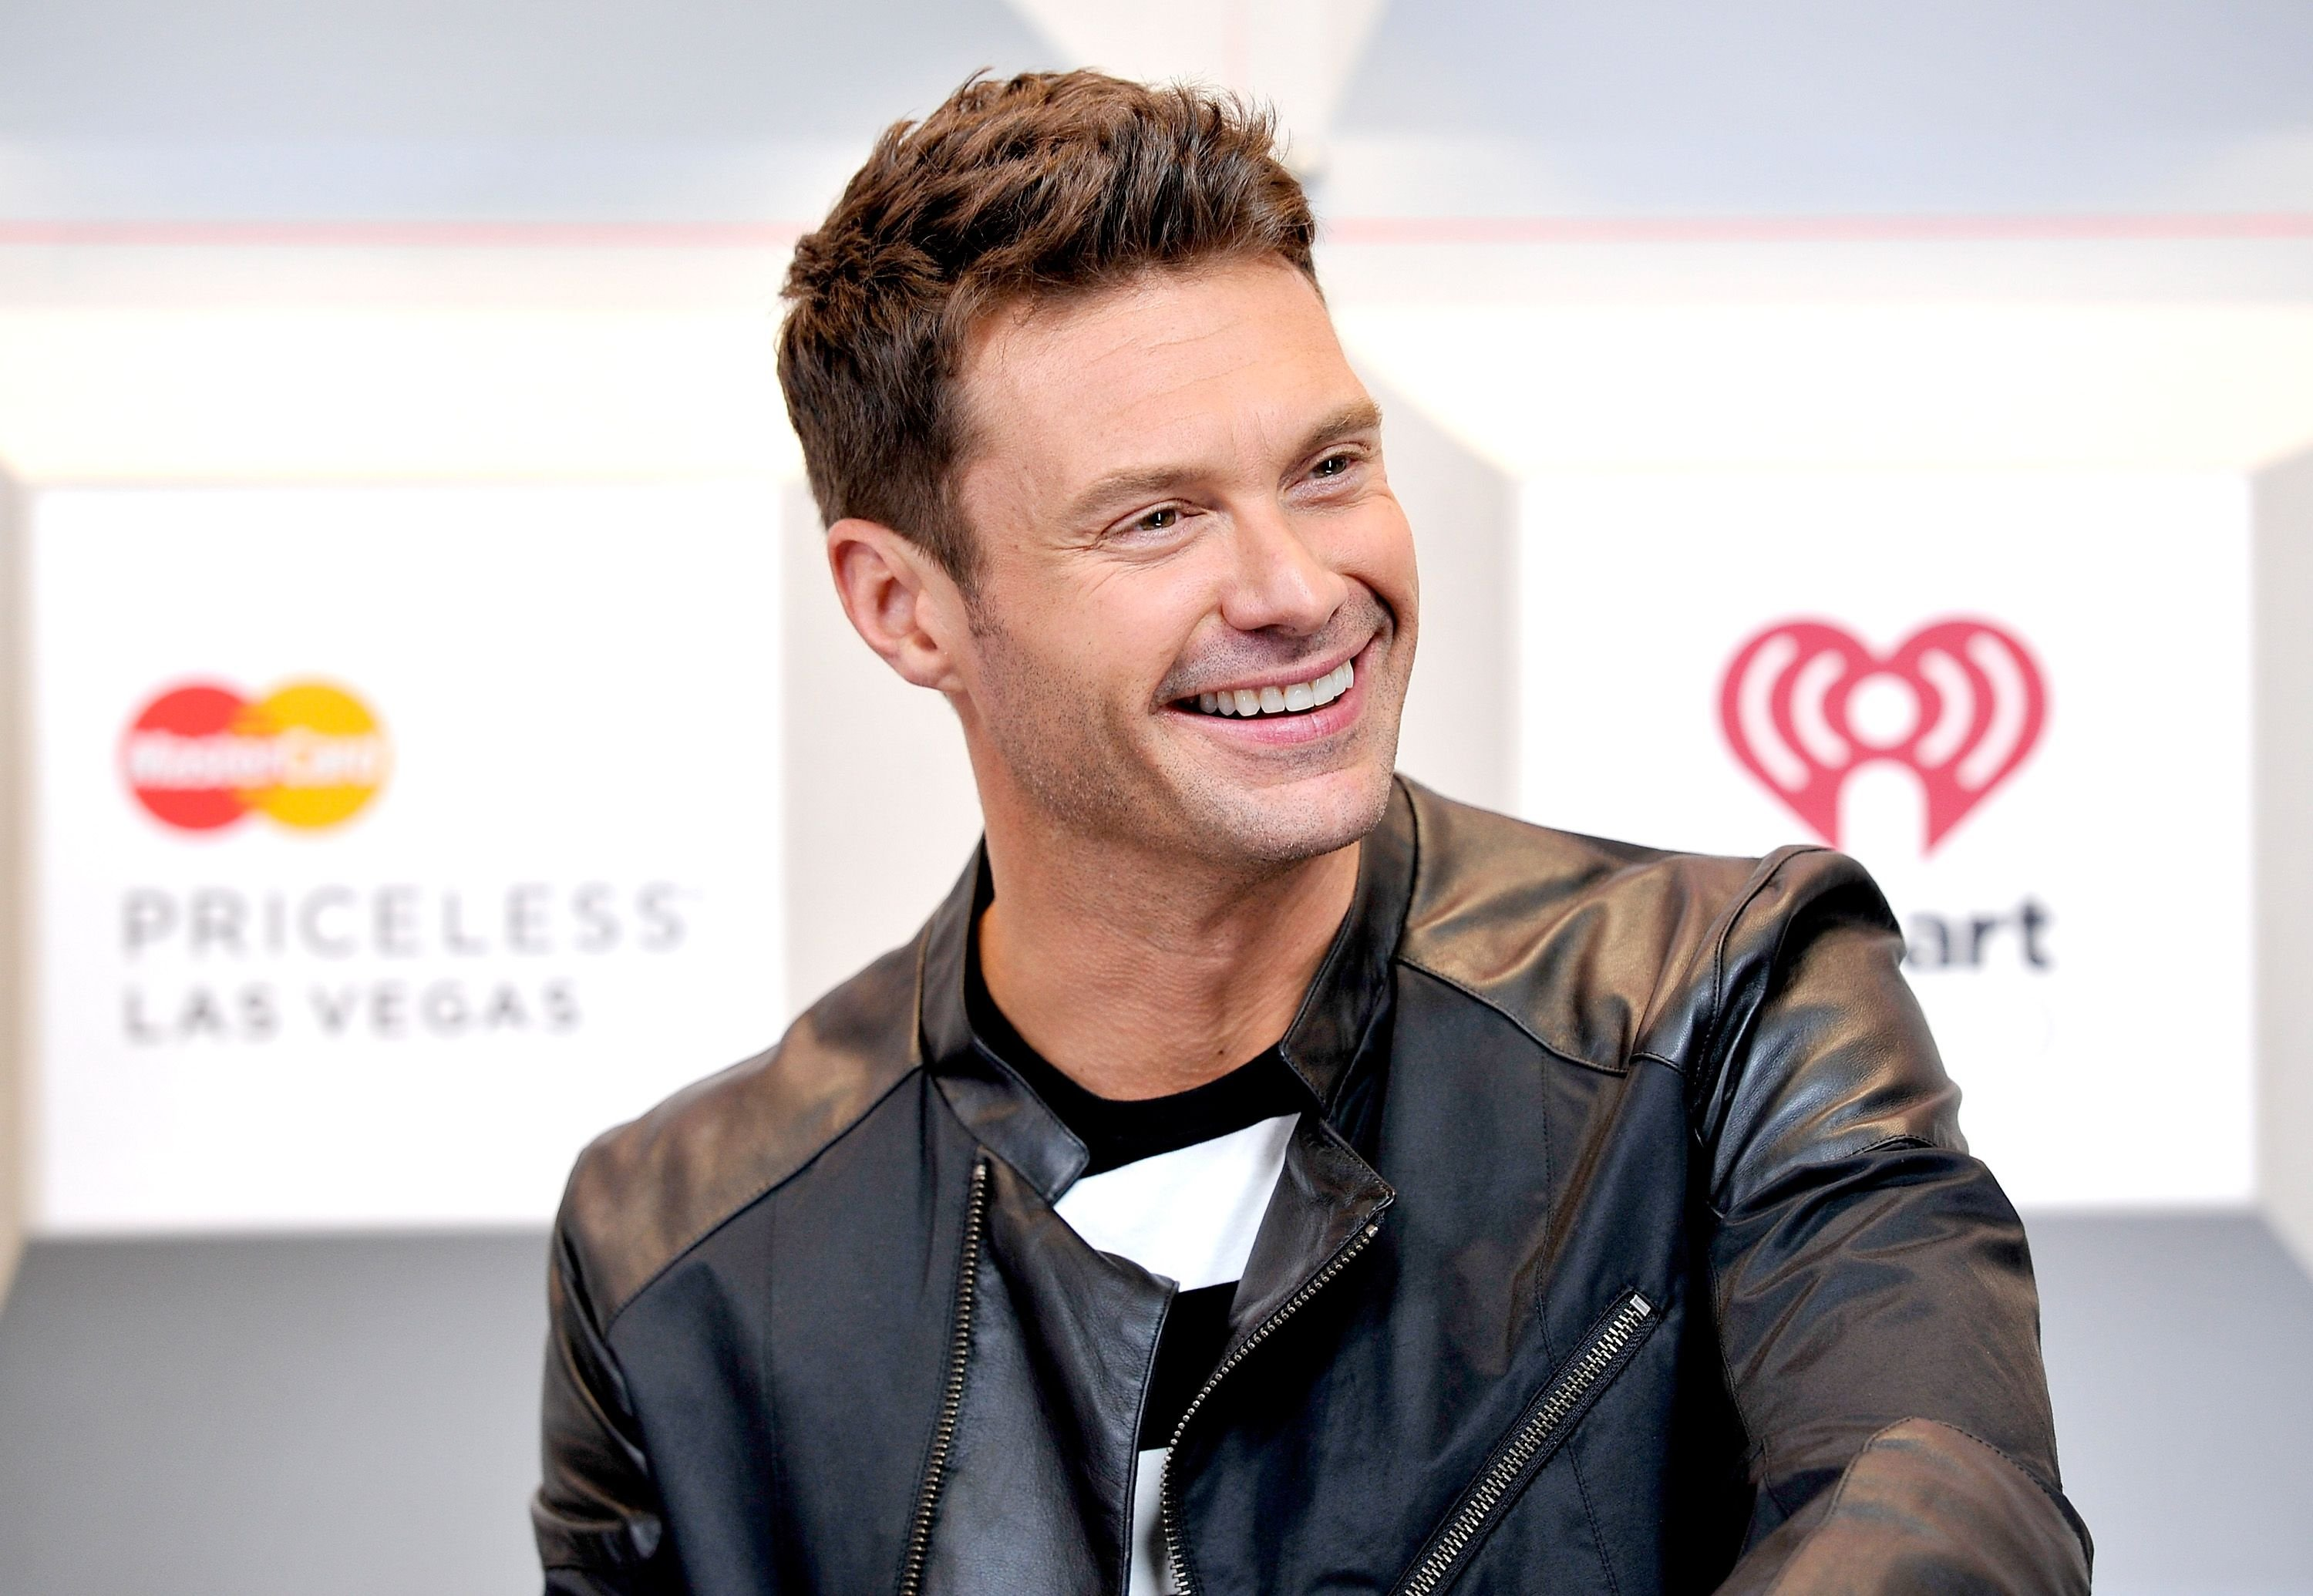 Host Ryan Seacrest at the 2014 iHeartRadio Music Festival at the MGM Grand Garden Arena on September 19, 2014. | Photo: Getty Images